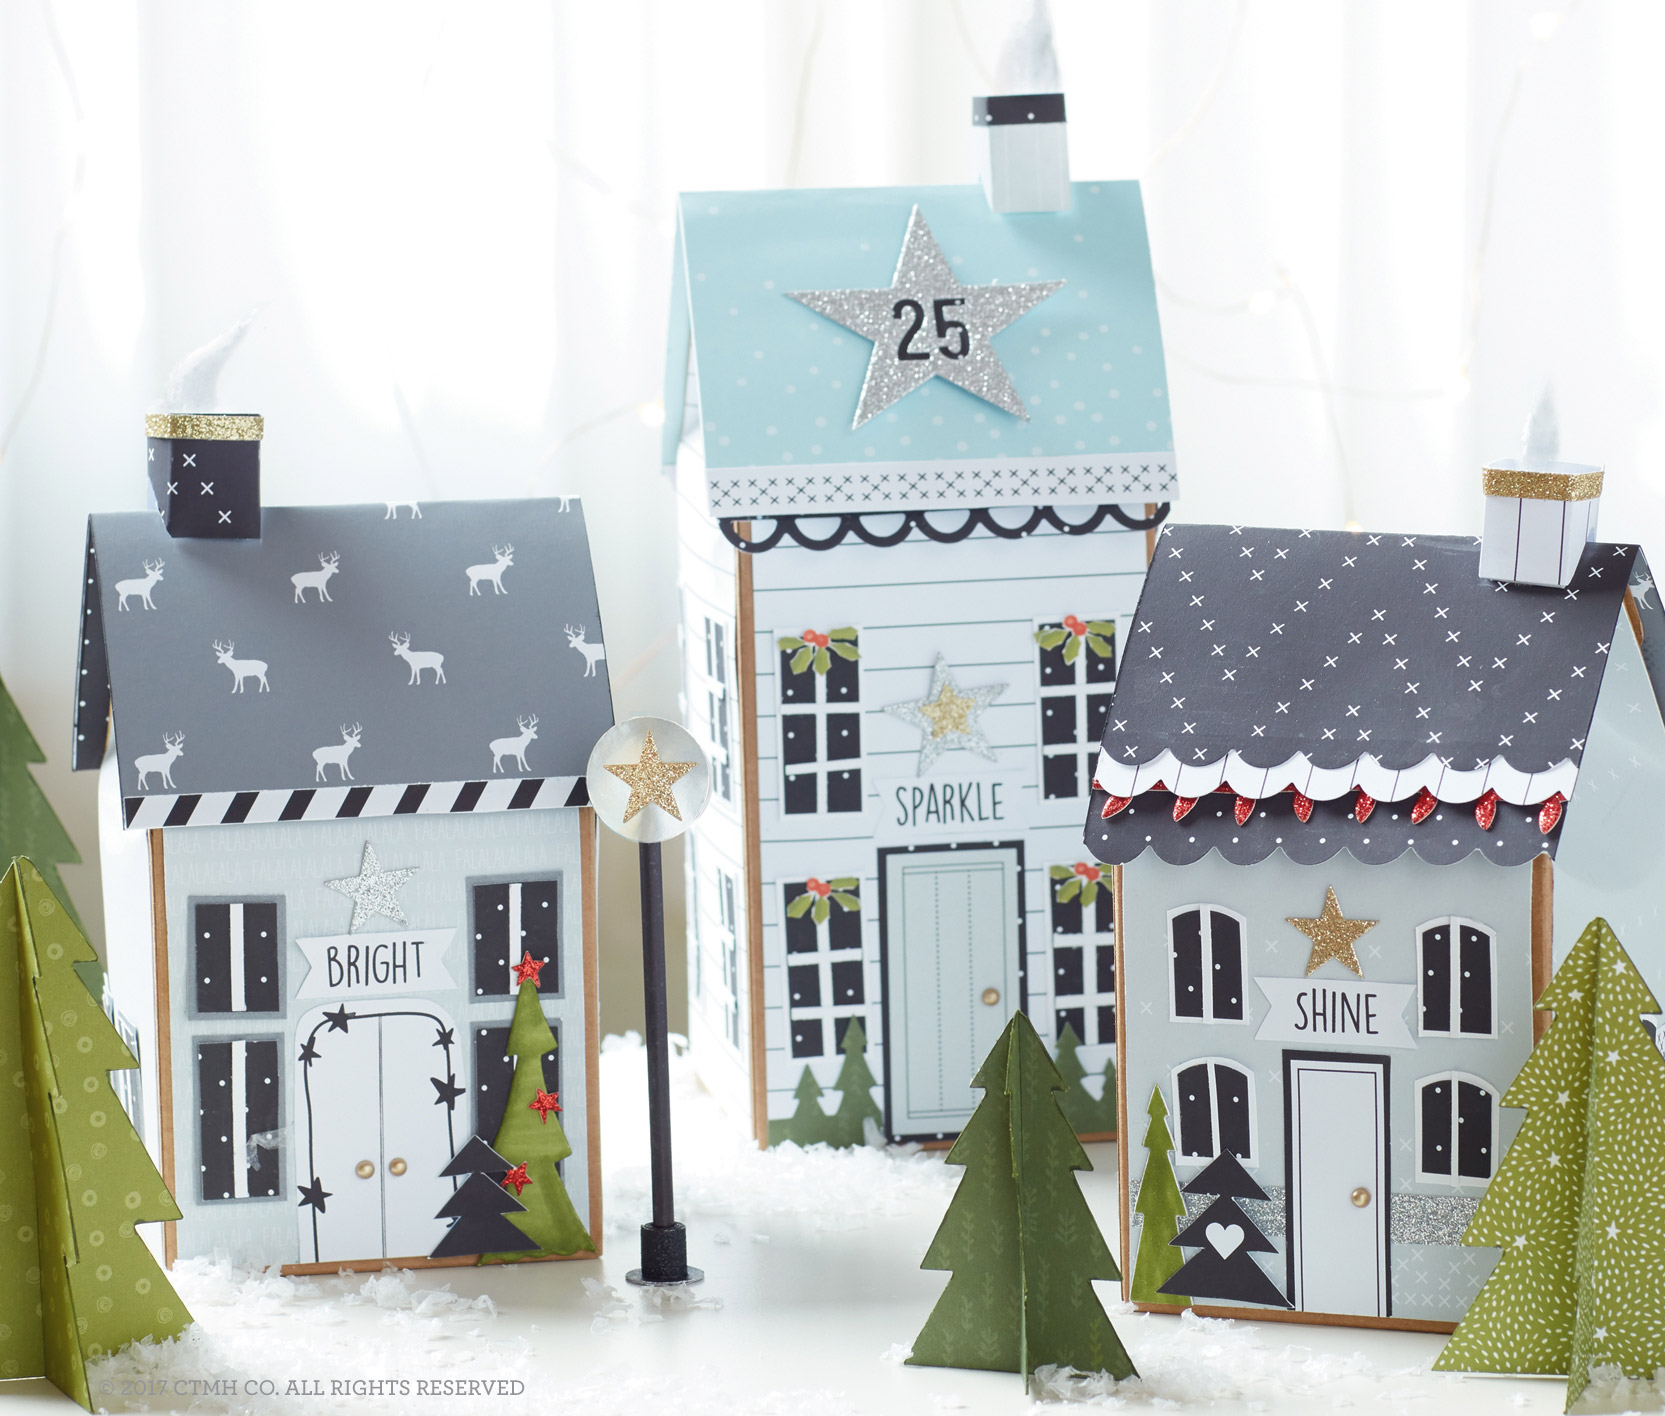 Create your Holiday Village